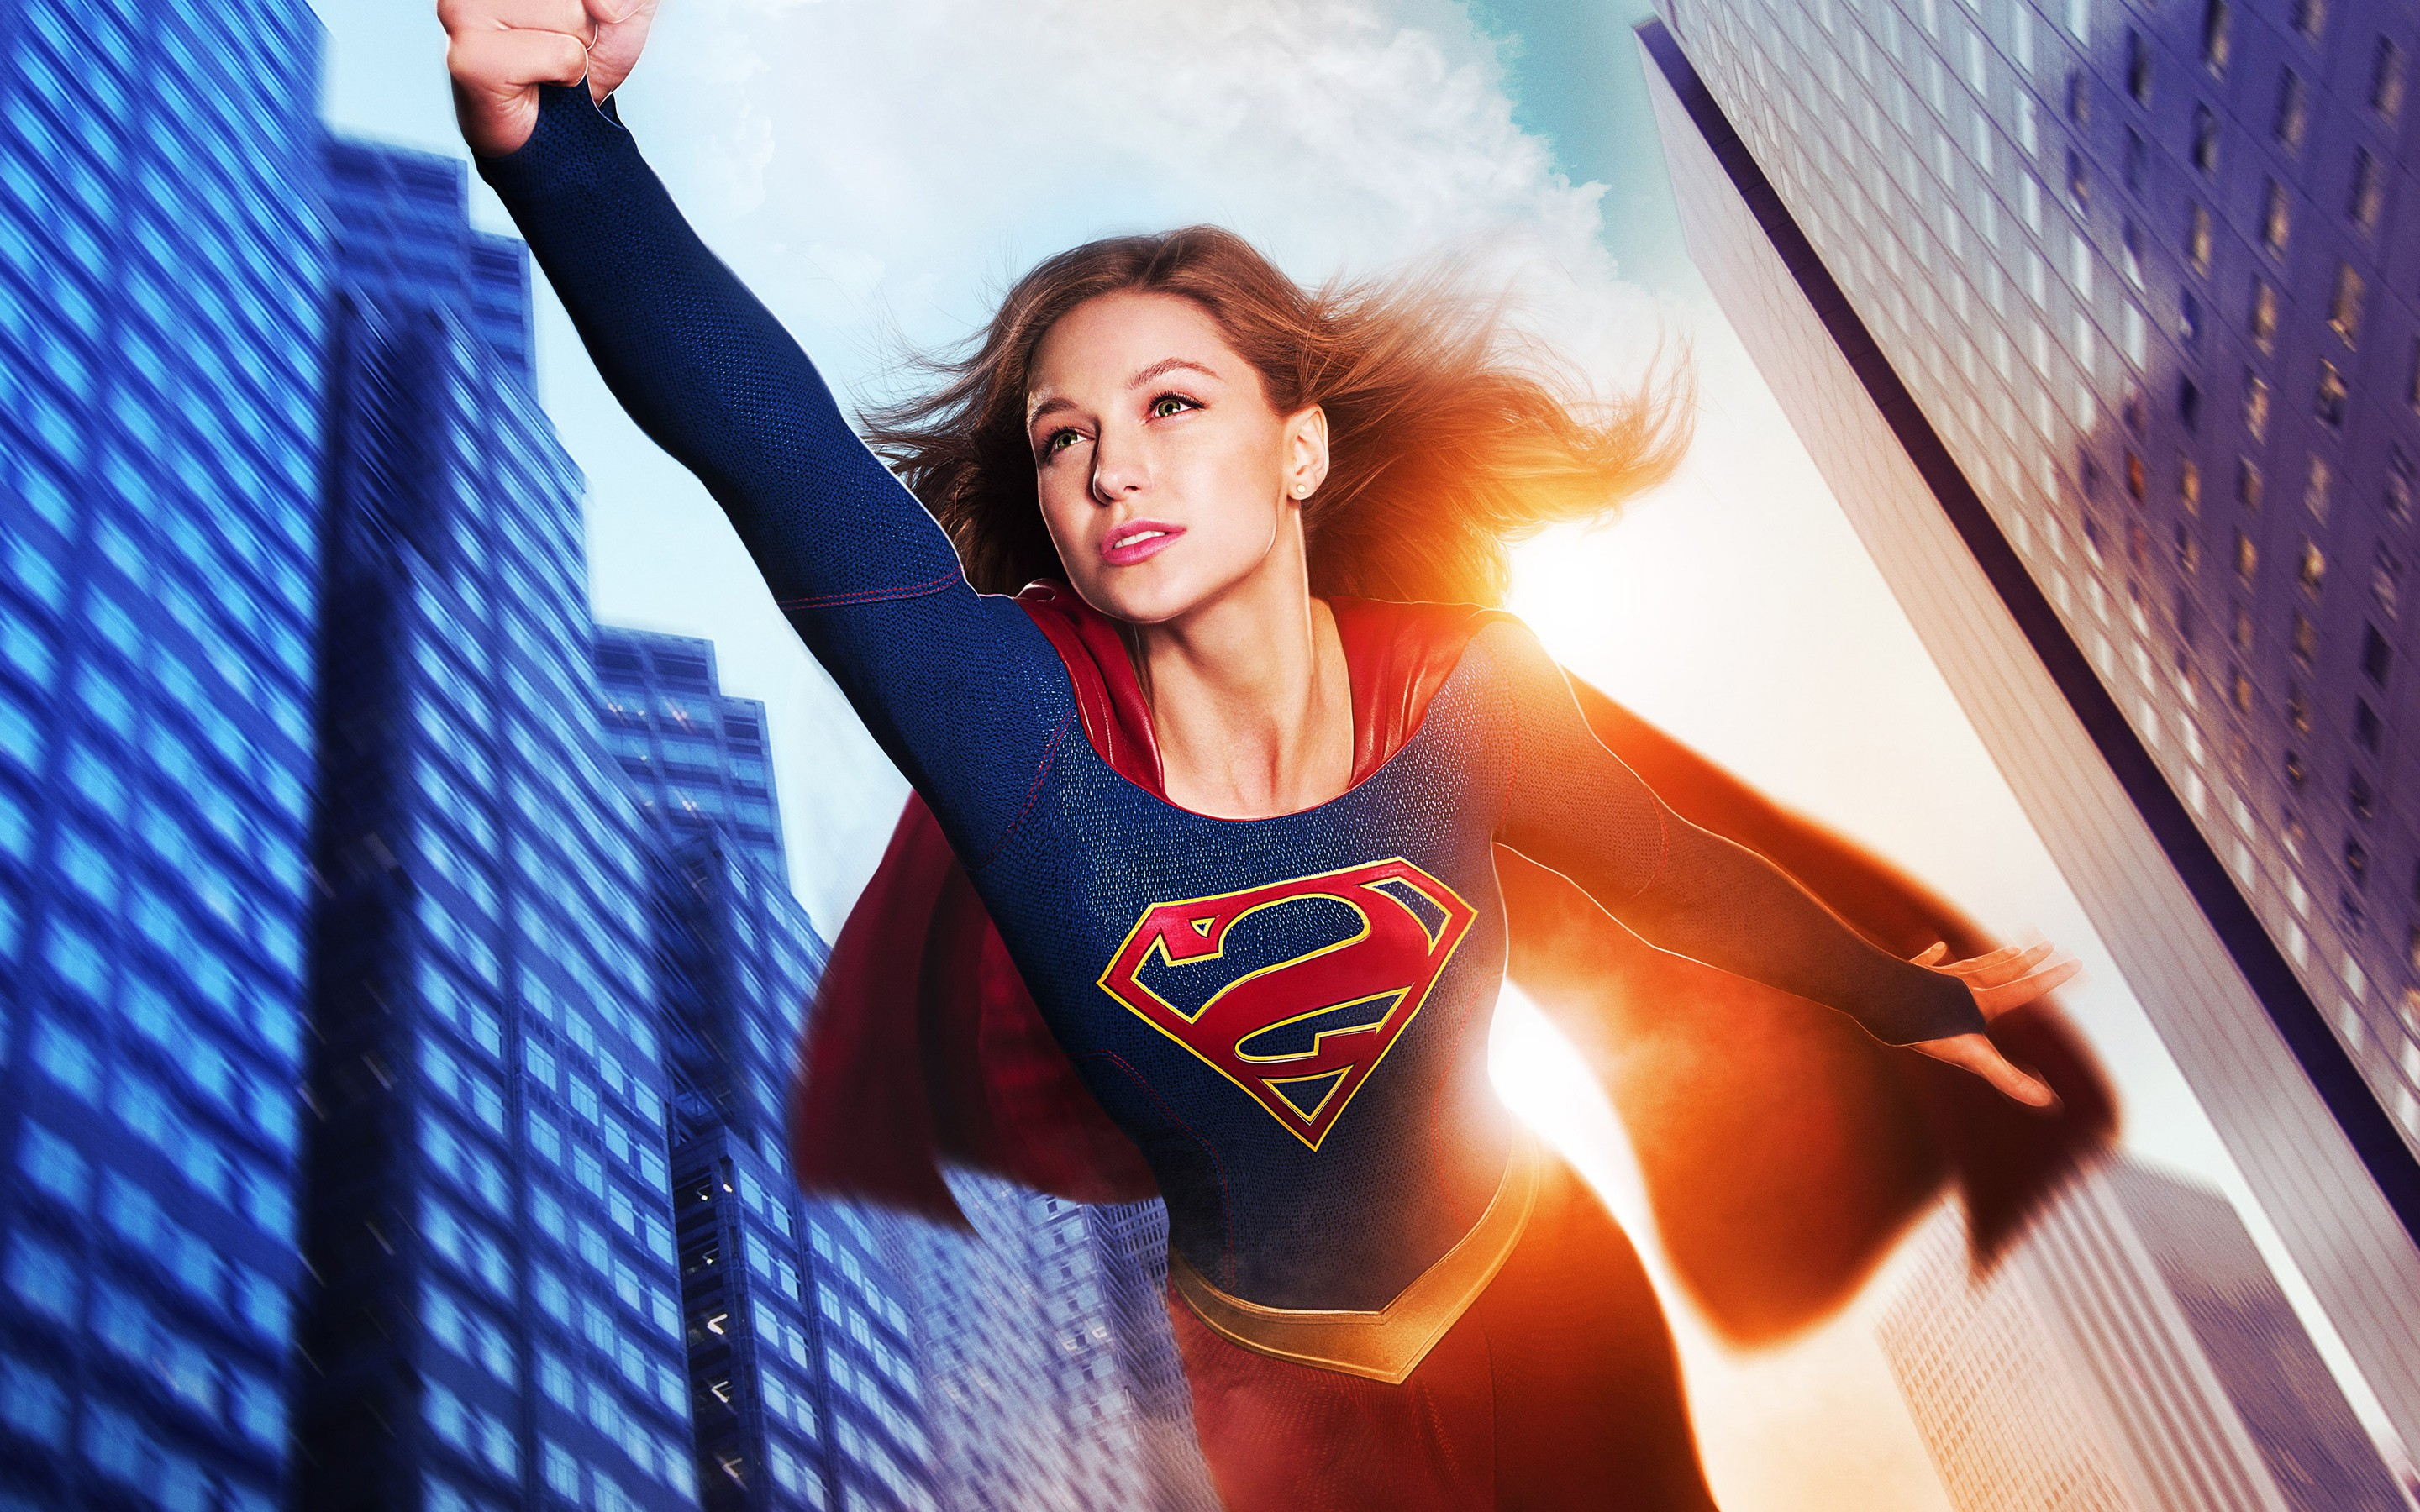 1440x900 Supergirl 2017 2 HD 4k Wallpapers In 1440x900 Screen ...